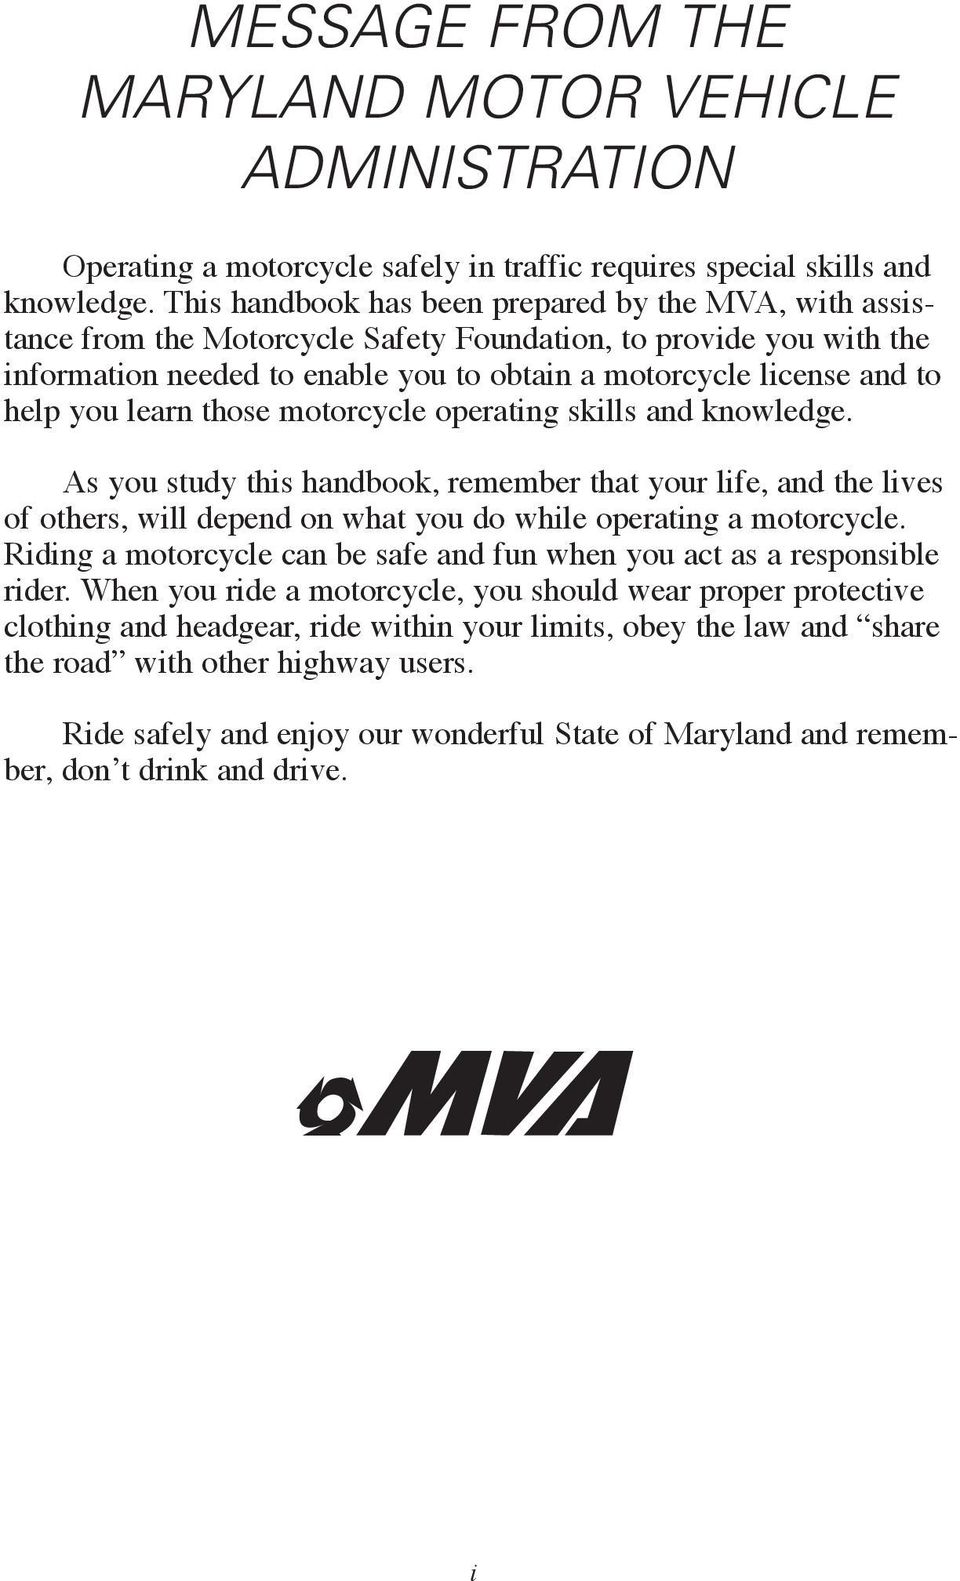 you learn those motorcycle operating skills and knowledge. As you study this handbook, remember that your life, and the lives of others, will depend on what you do while operating a motorcycle.